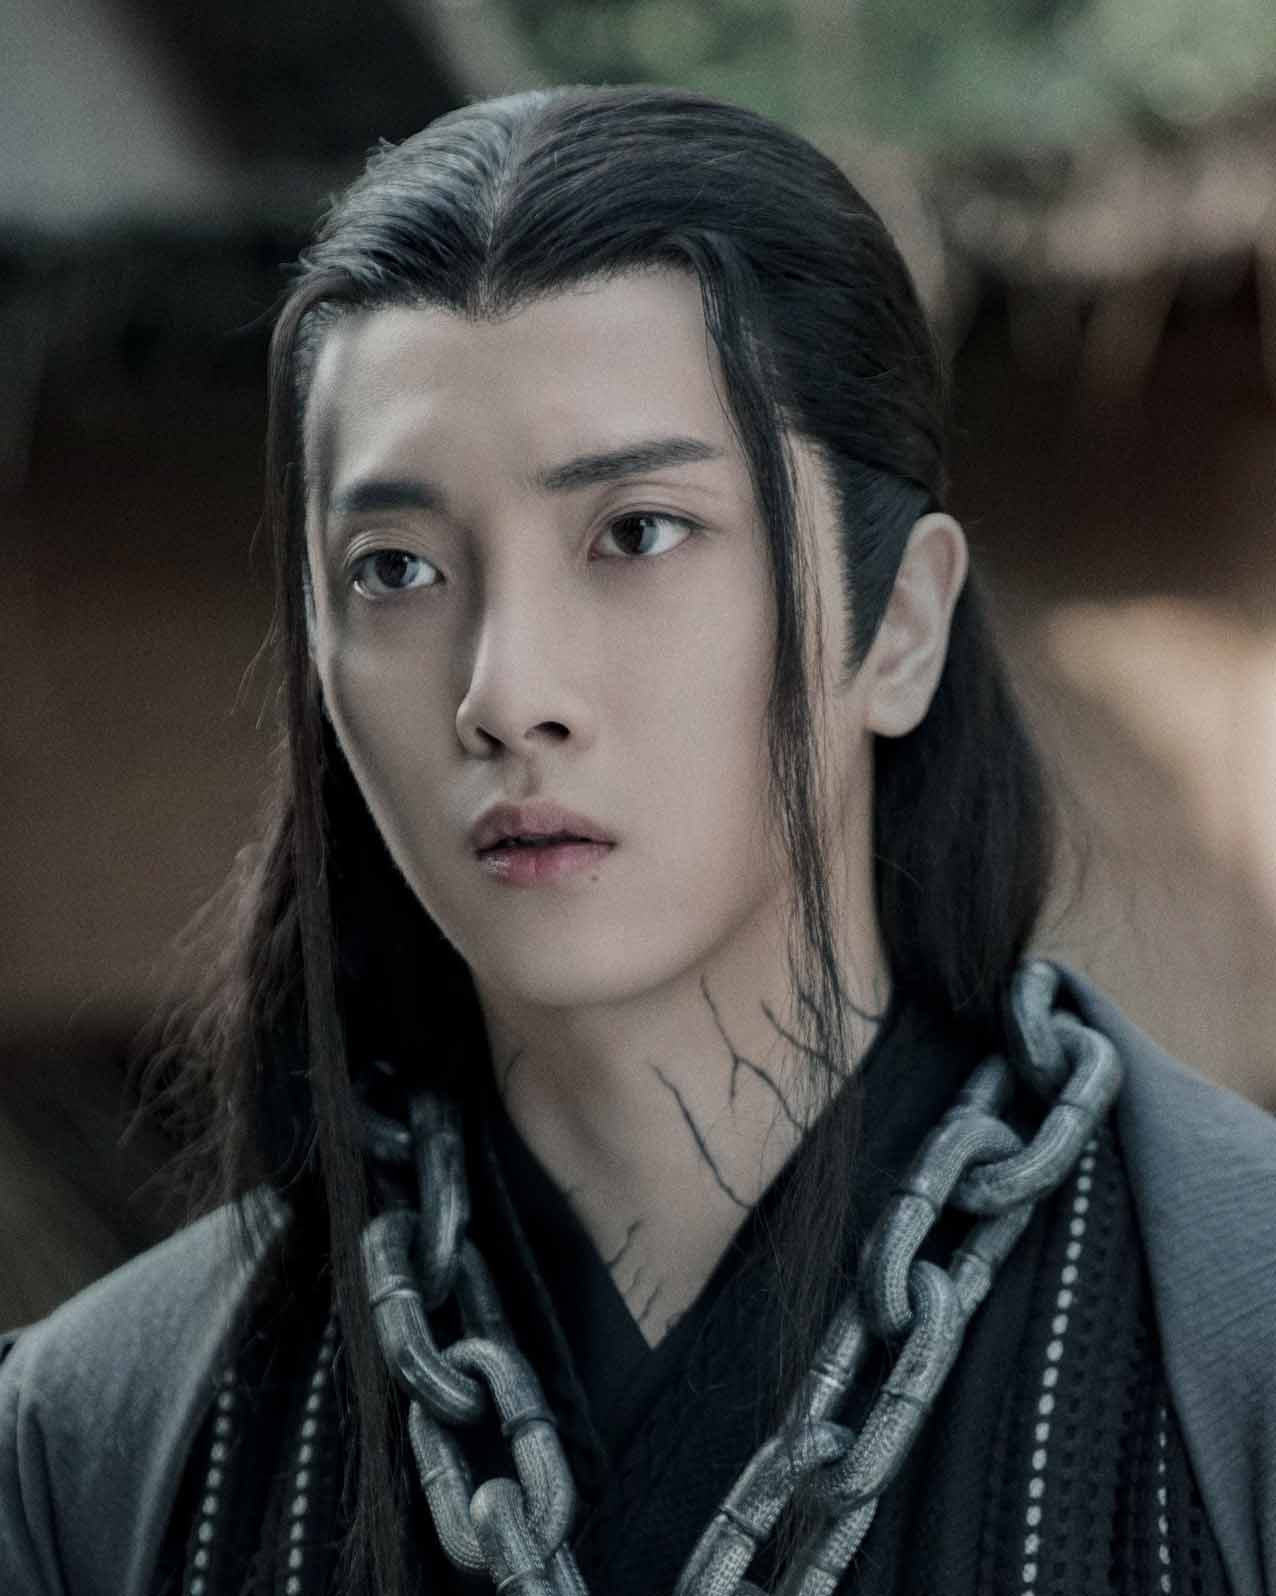 The attention in 'The Untamed' is on Wei Wuxian and Lan Wangji, but the attention should be on Wen Ning. Yet not even the show wants to give him a break.